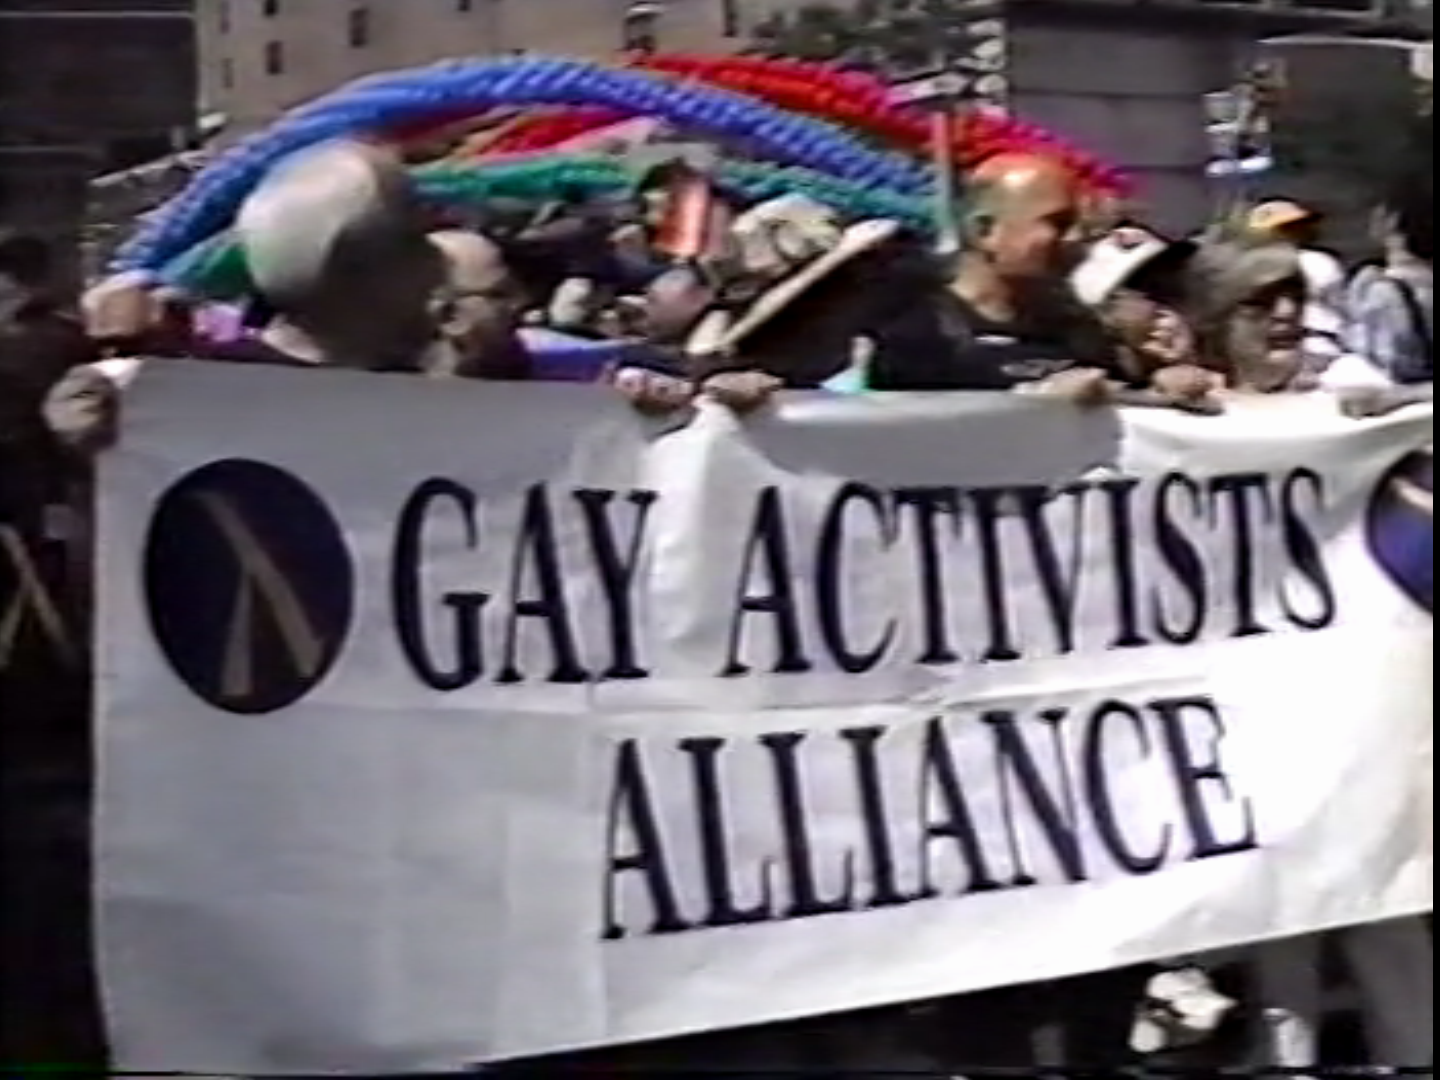 Gay Activists Alliance at the Pride March. 1994. VHS. Still from the item Rudy Grillo Moving Image #8.